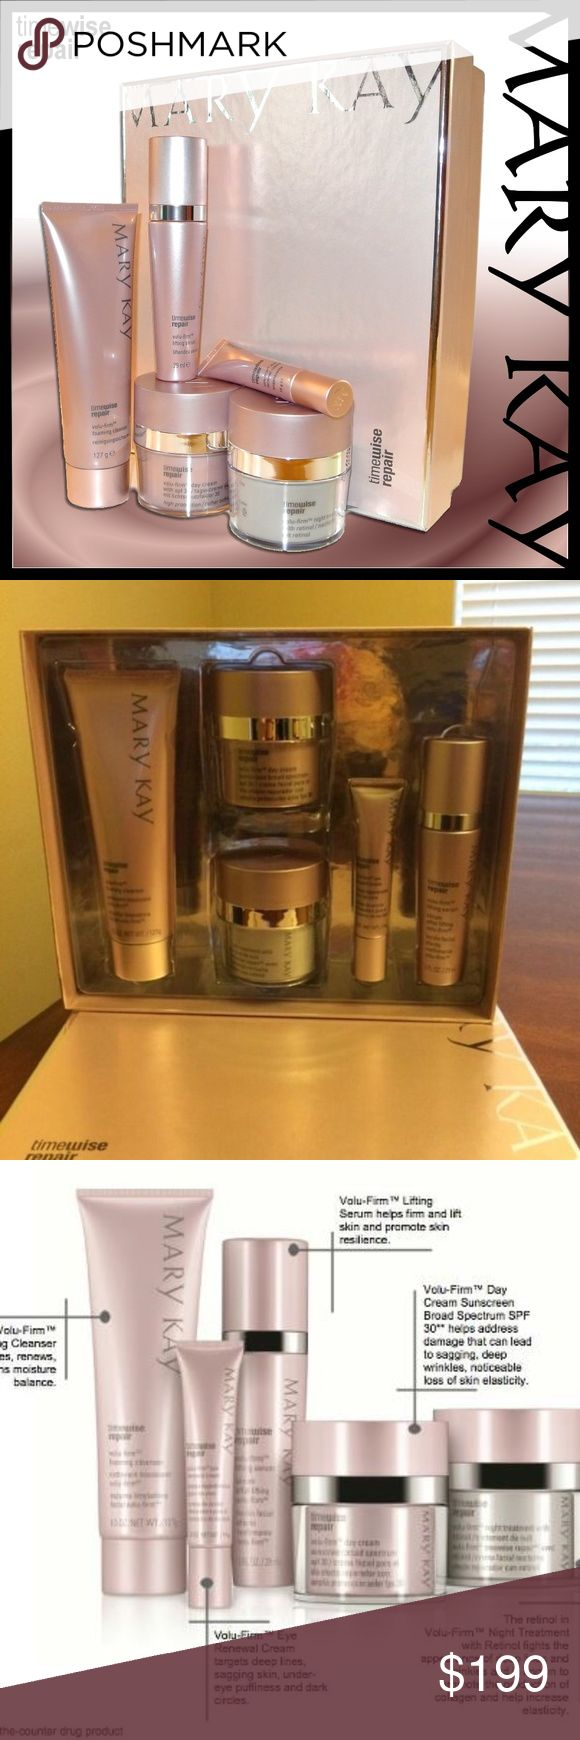 Mary Kay Timewise Repair Set Mary Kay Timewise Repair Set comes with Volu-Firm Foaming Cleanser, Volu-Firm Lifting Serum, Volu-Firm Day Cream Sunscreen Broad Spectrum SPF 30, Volu-Firm Eye Renewal Cream, & Volu-Firm Night Treatment with Retinol. Mary Kay Makeup